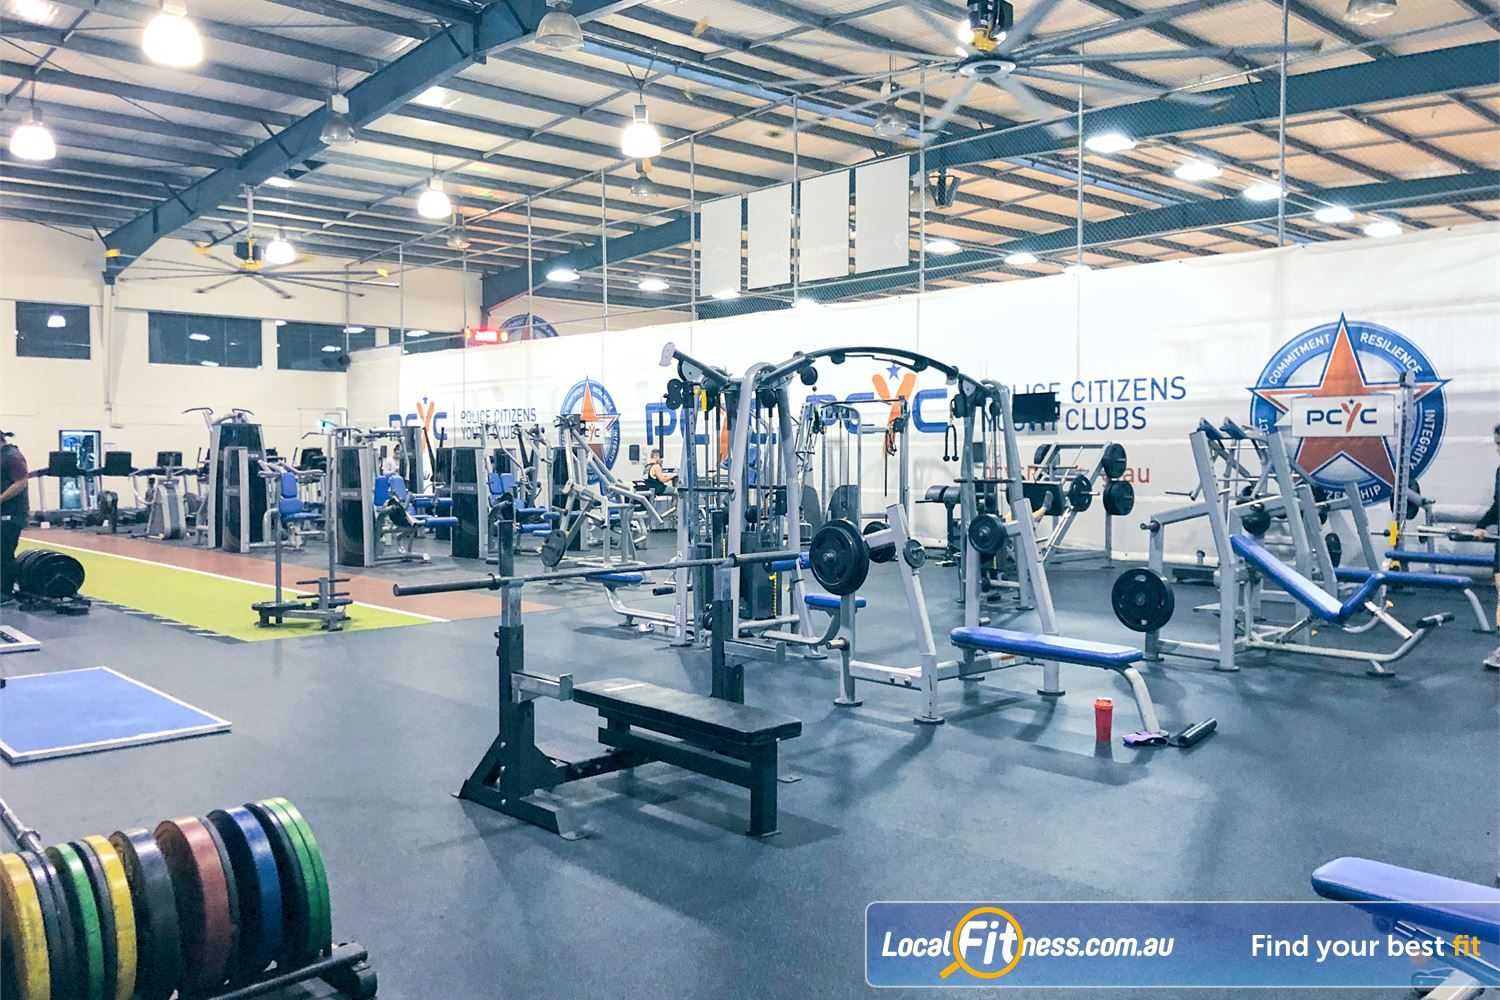 PCYC Auburn Near Rookwood Multiple bench presses, benches, weight plates and more.